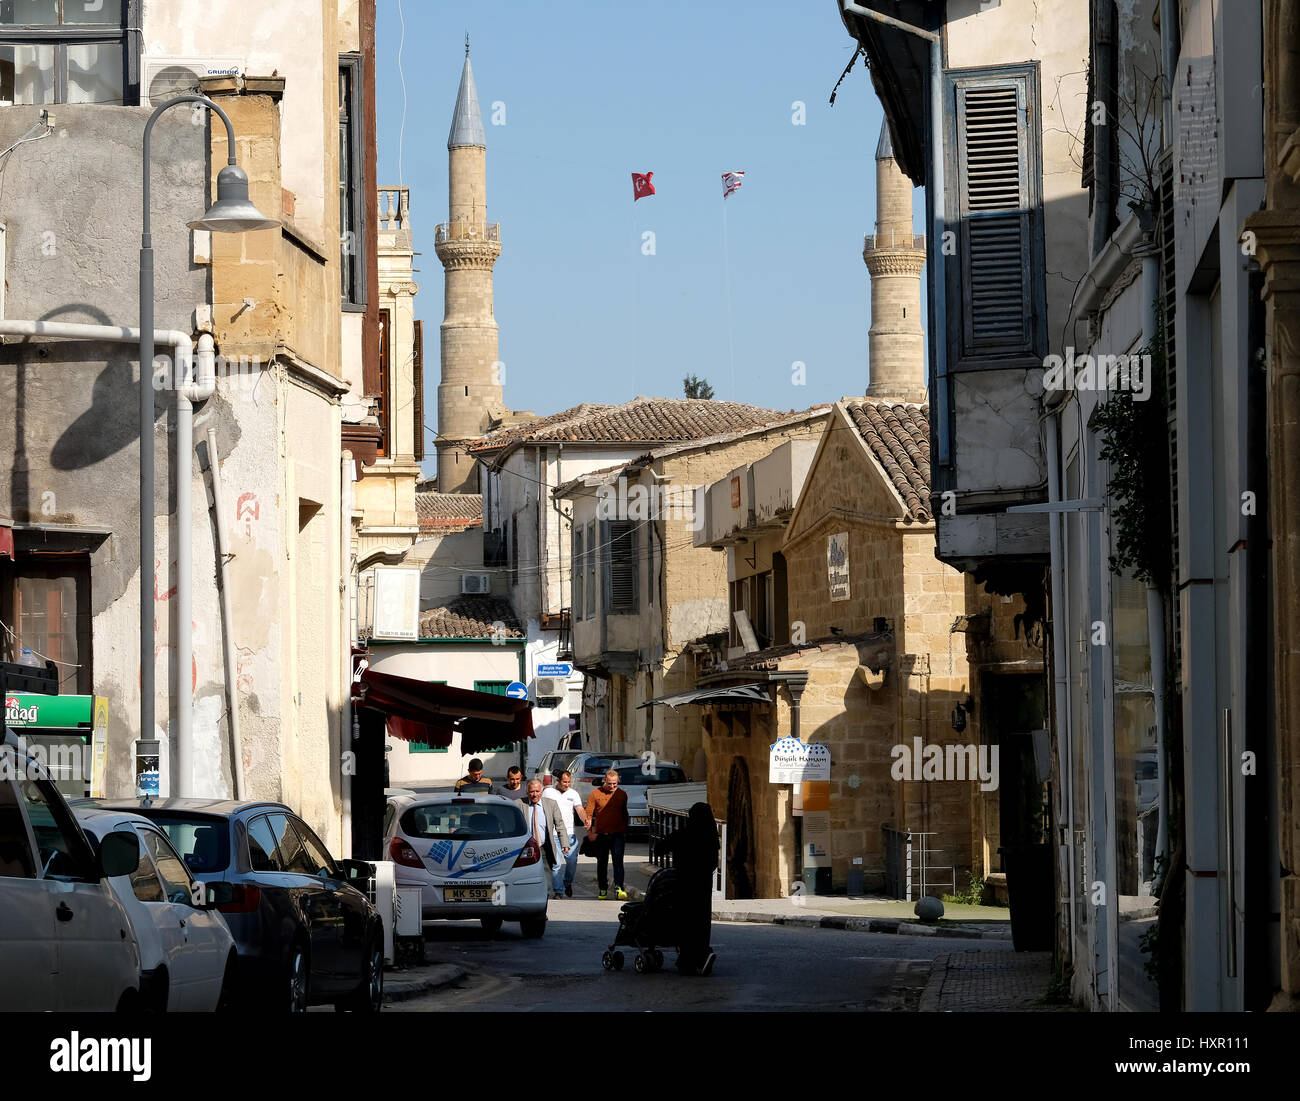 A back street leading to Selimiye Mosque, Northern Nicosia, Cyprus. - Stock Image